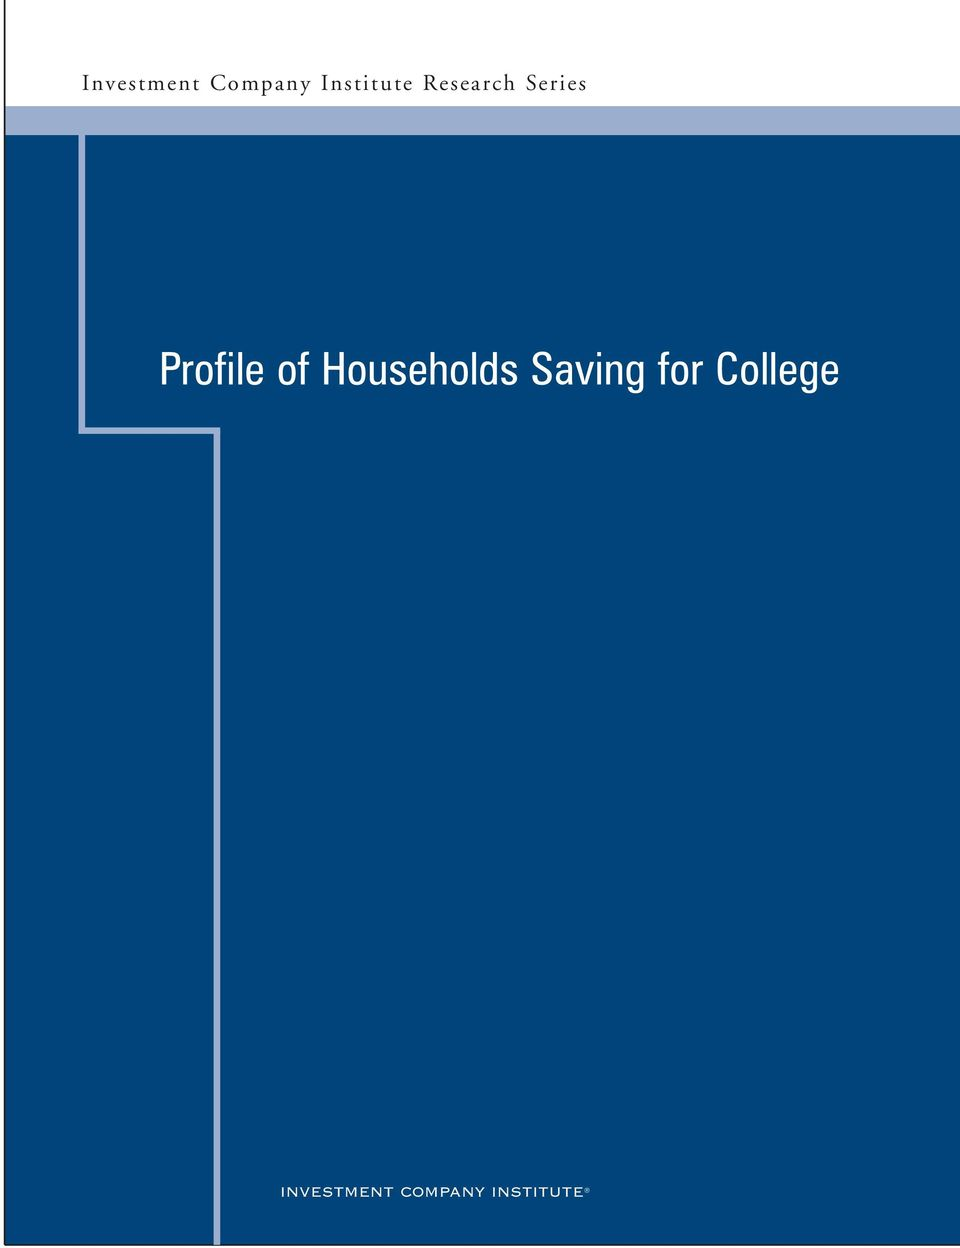 Households Saving for